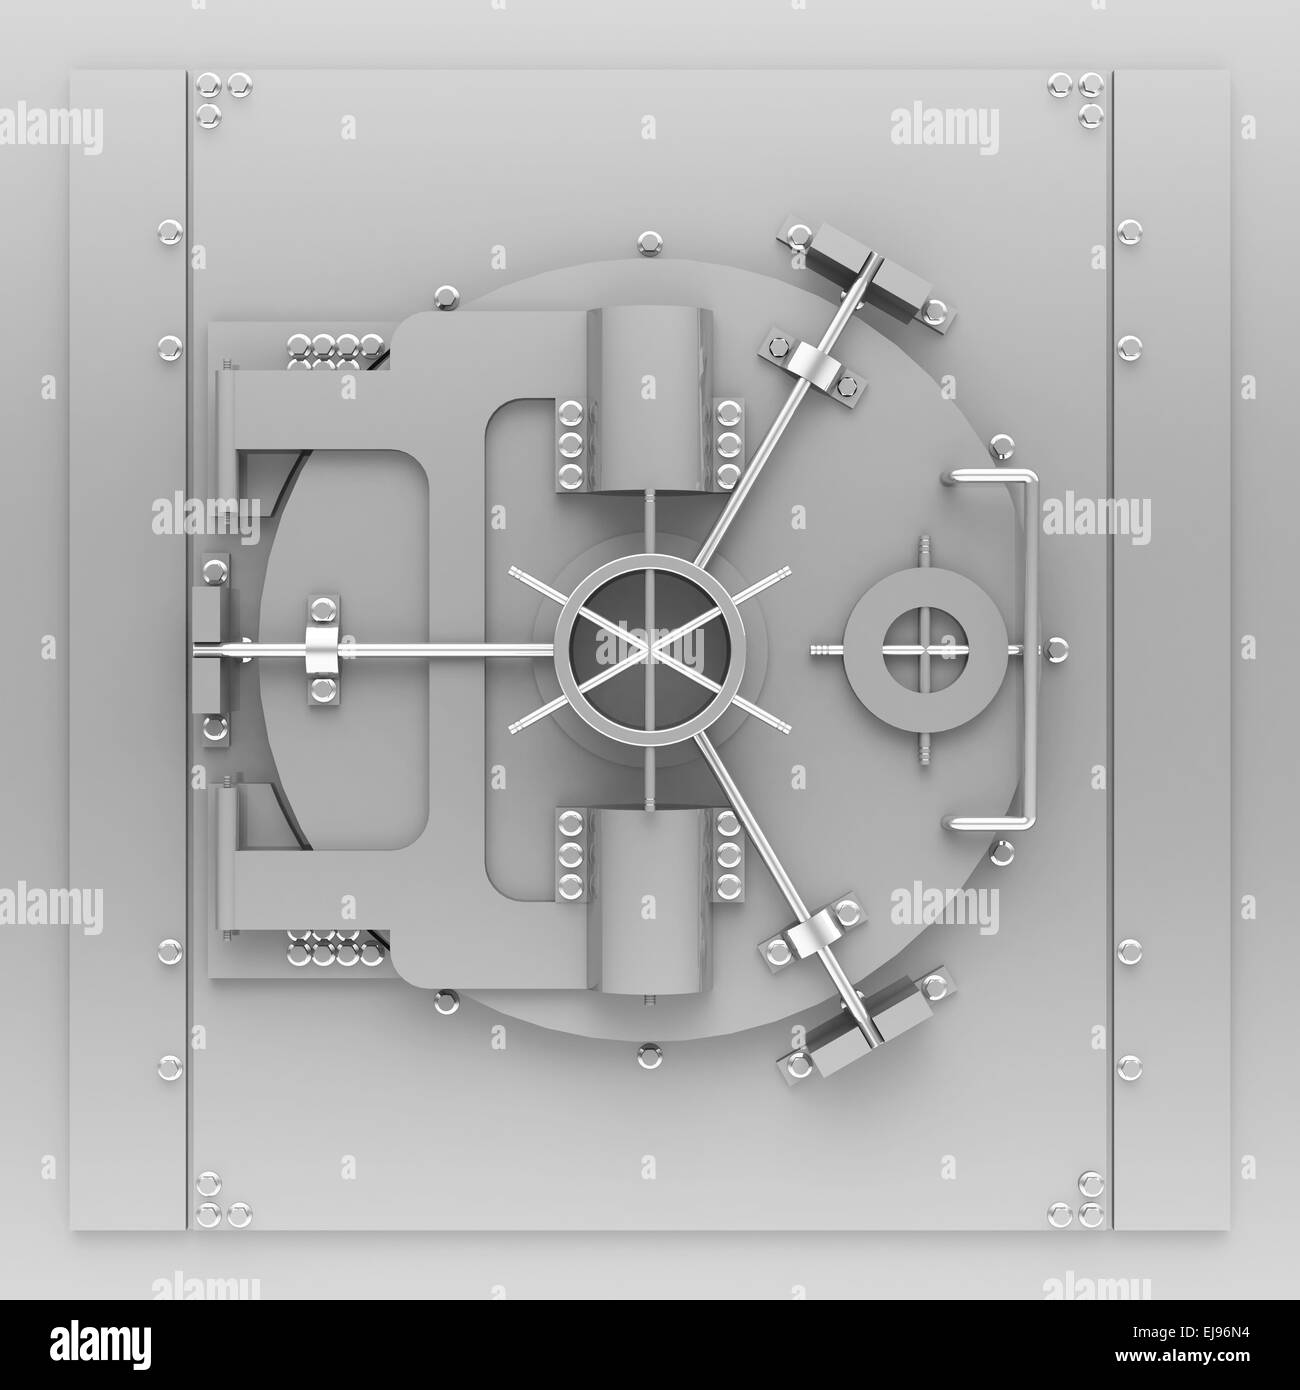 the bank vault - Stock Image